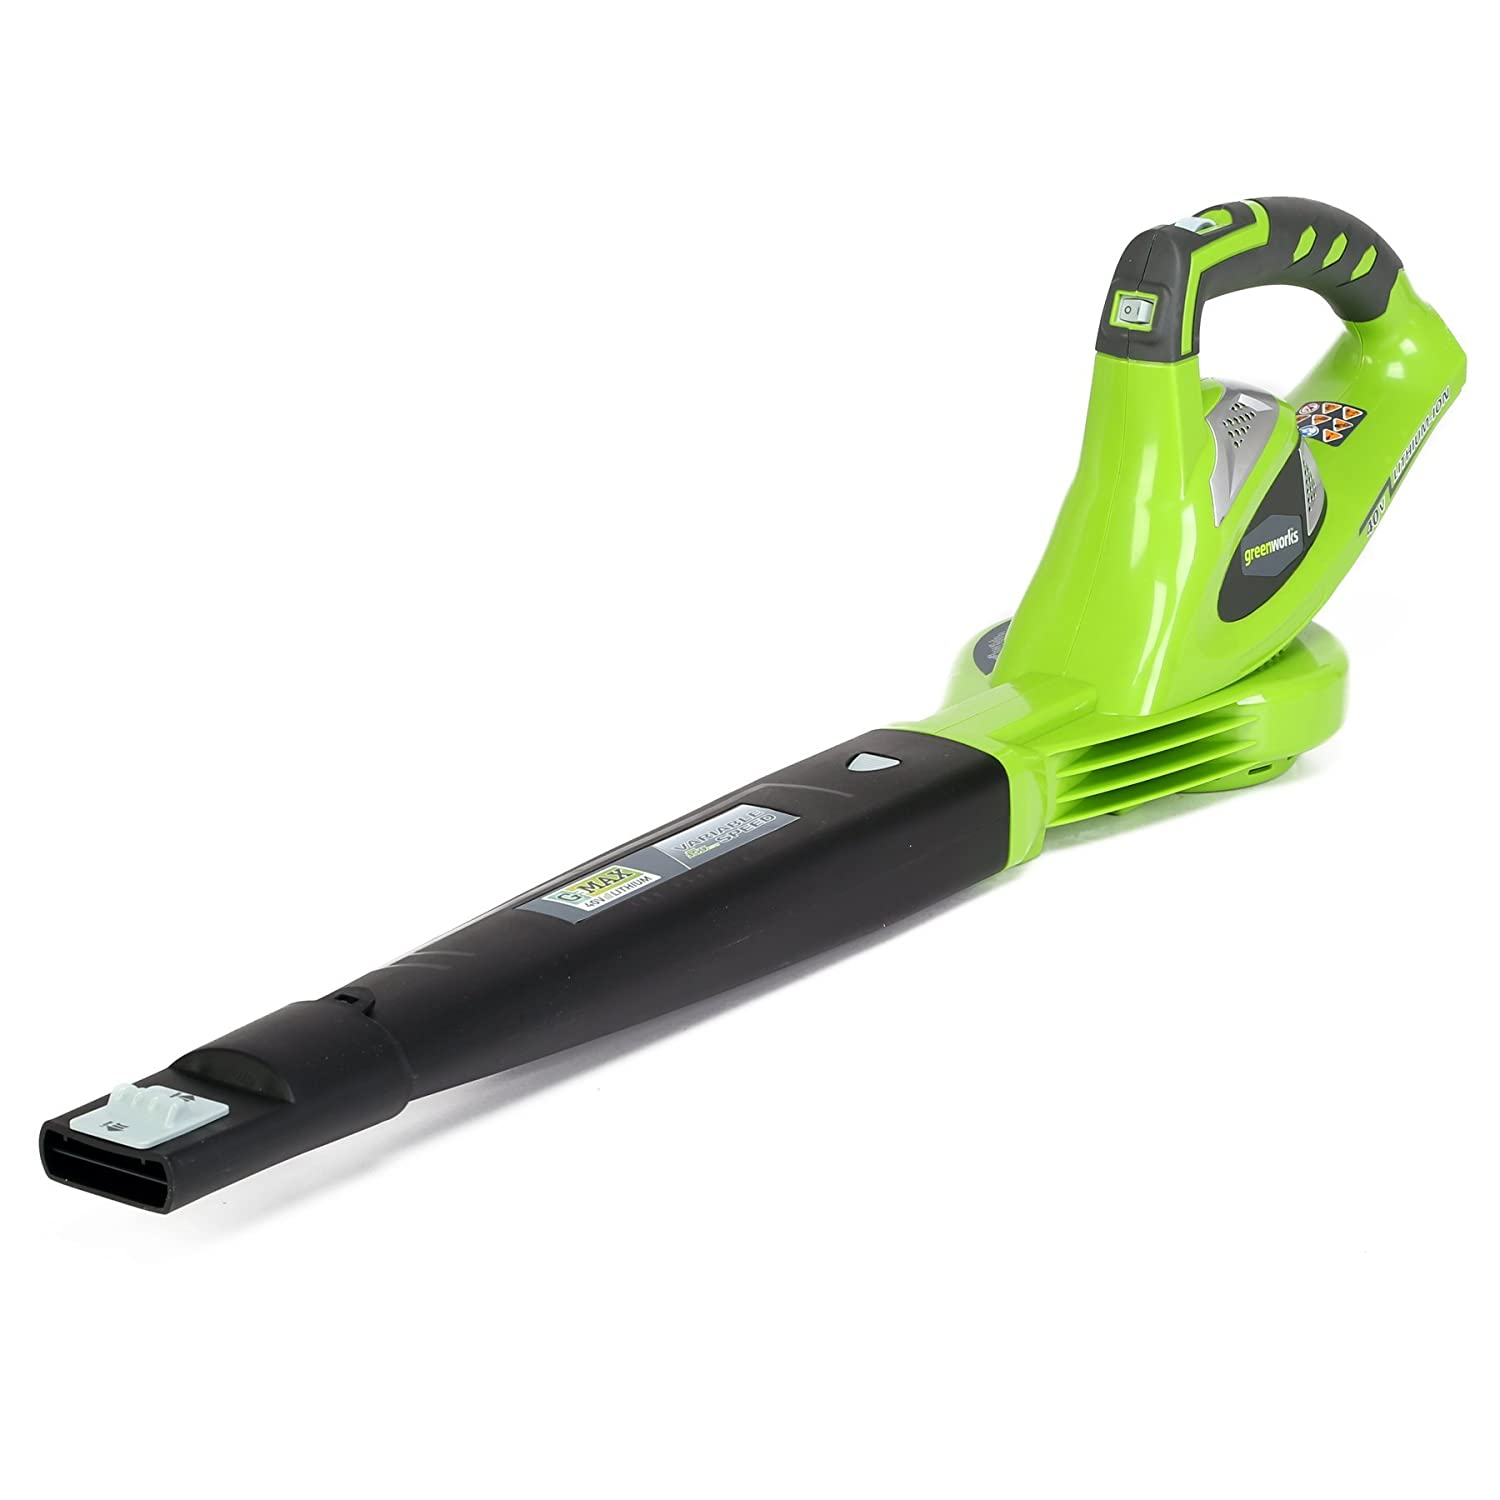 Greenworks 40V 150 MPH Variable Speed Cordless Blower, Battery Not Included 24282 Renewed